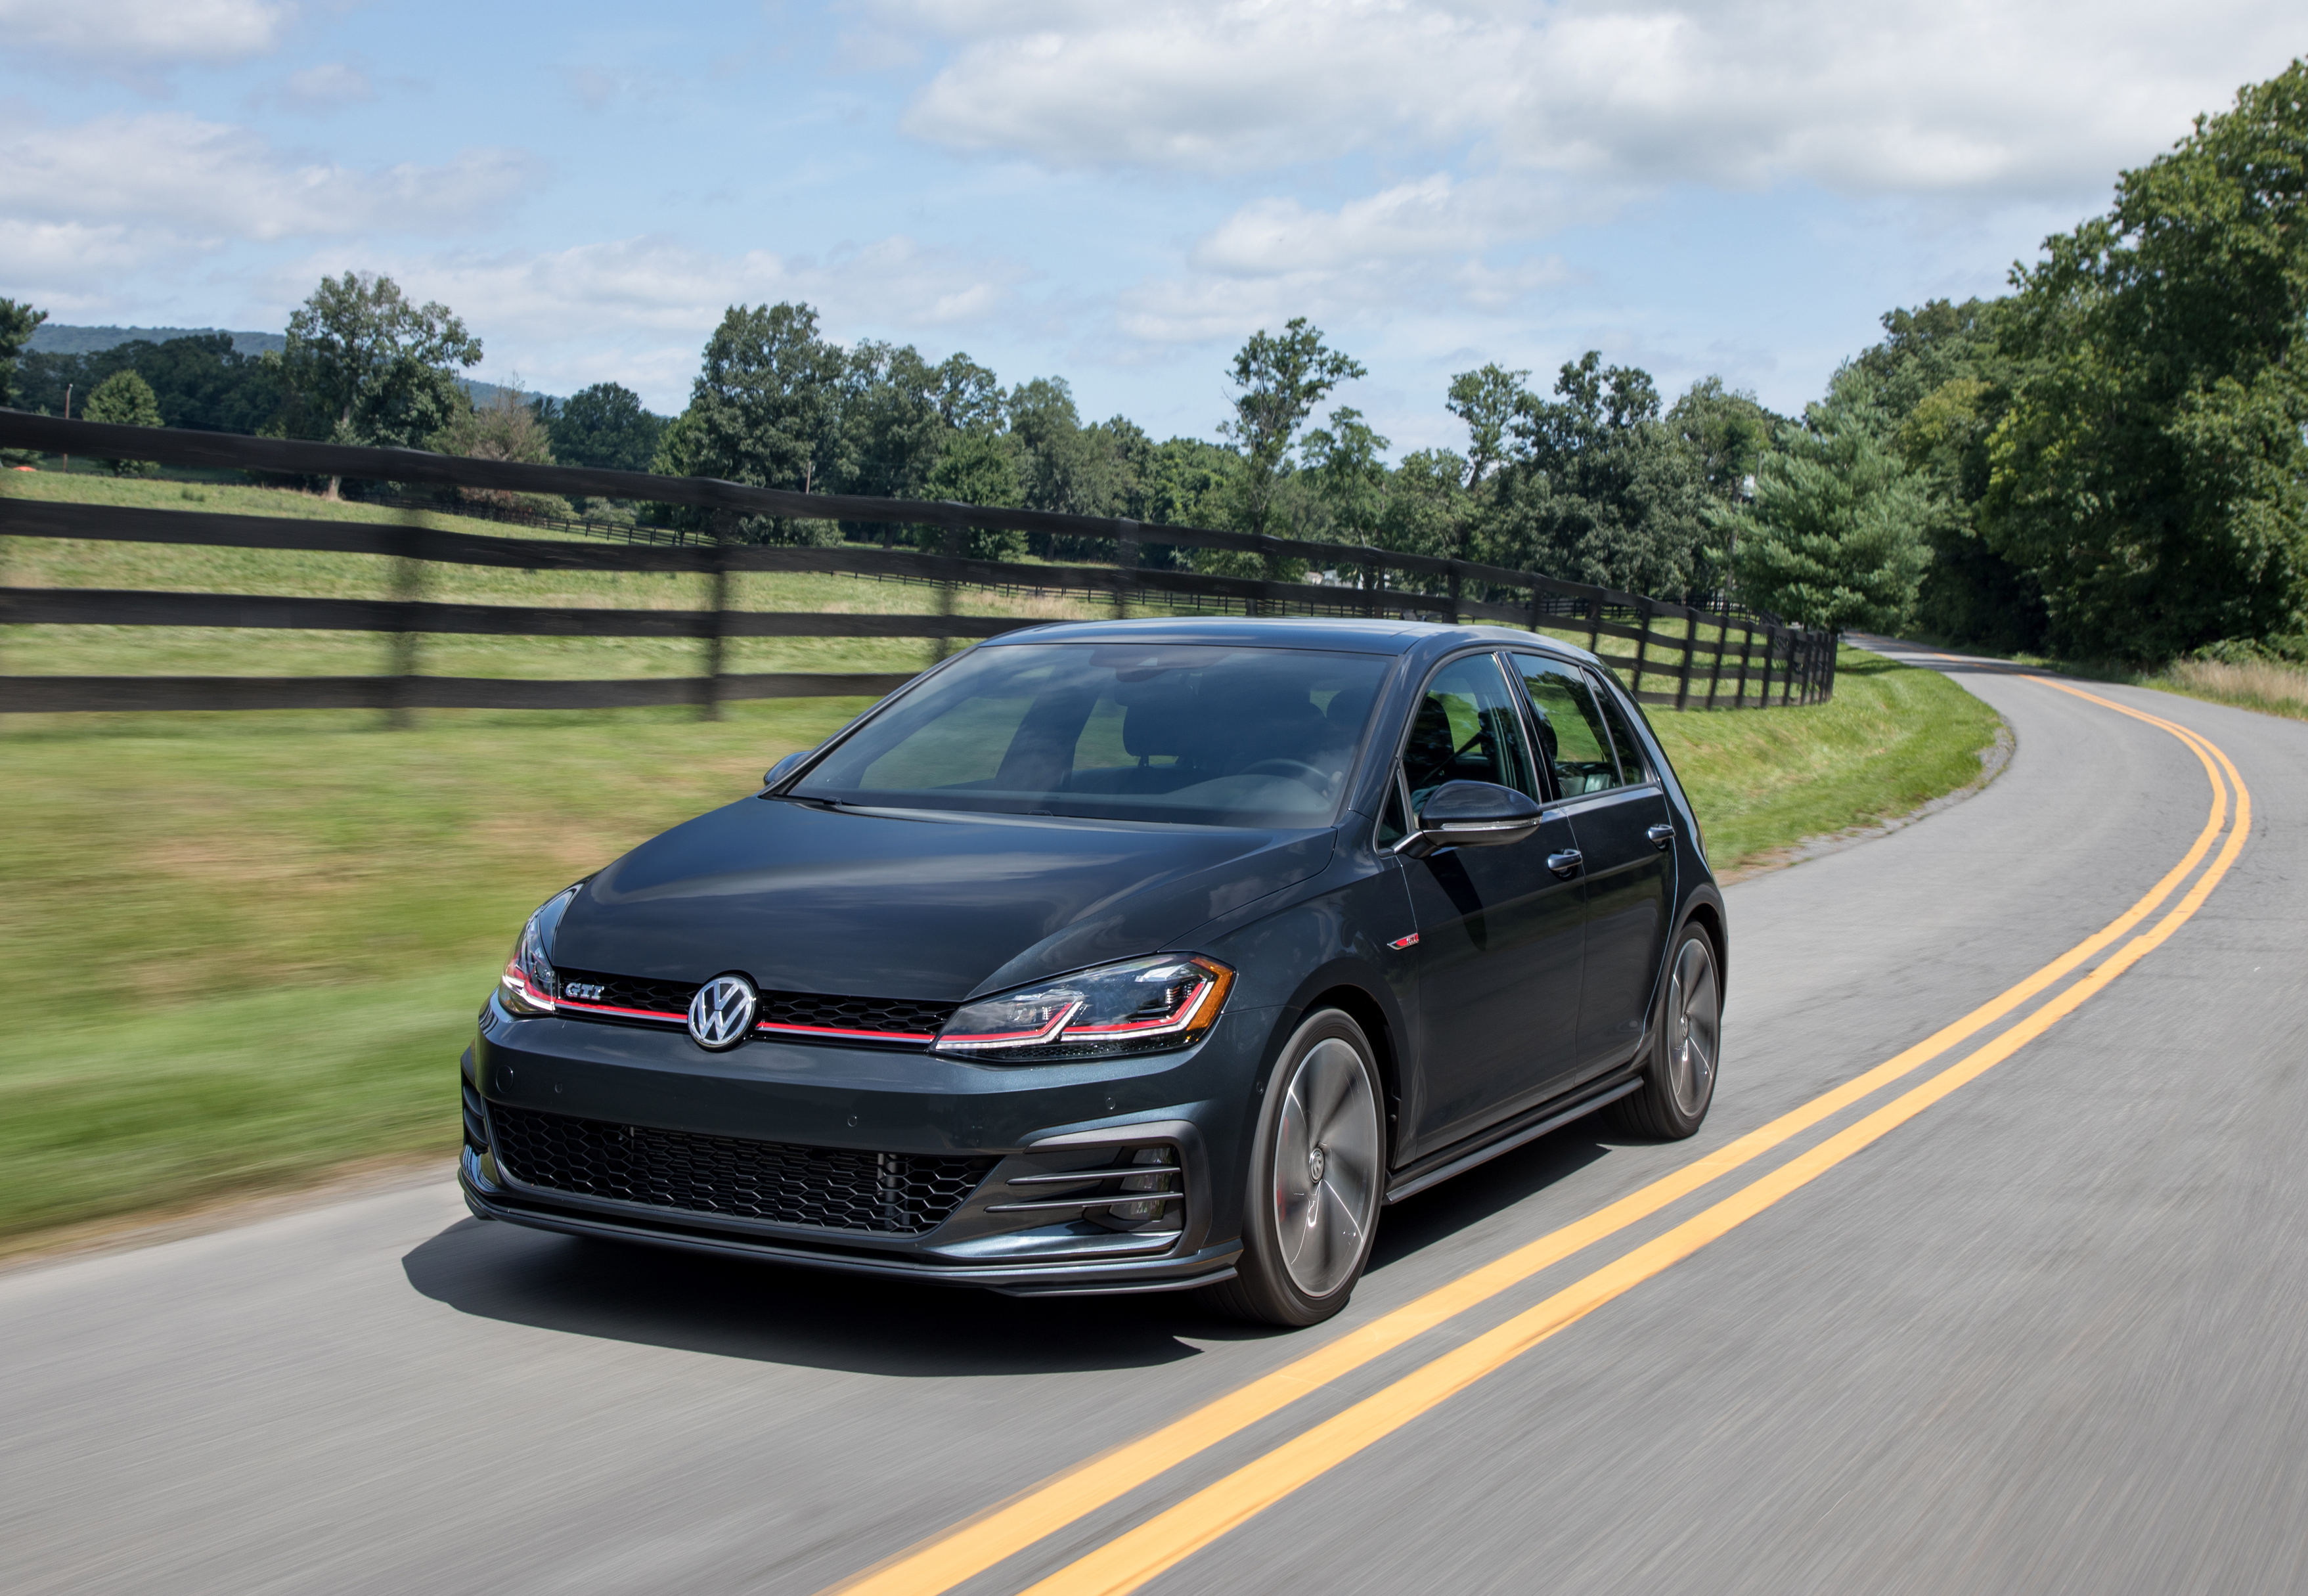 Golf GTI Driving on country road